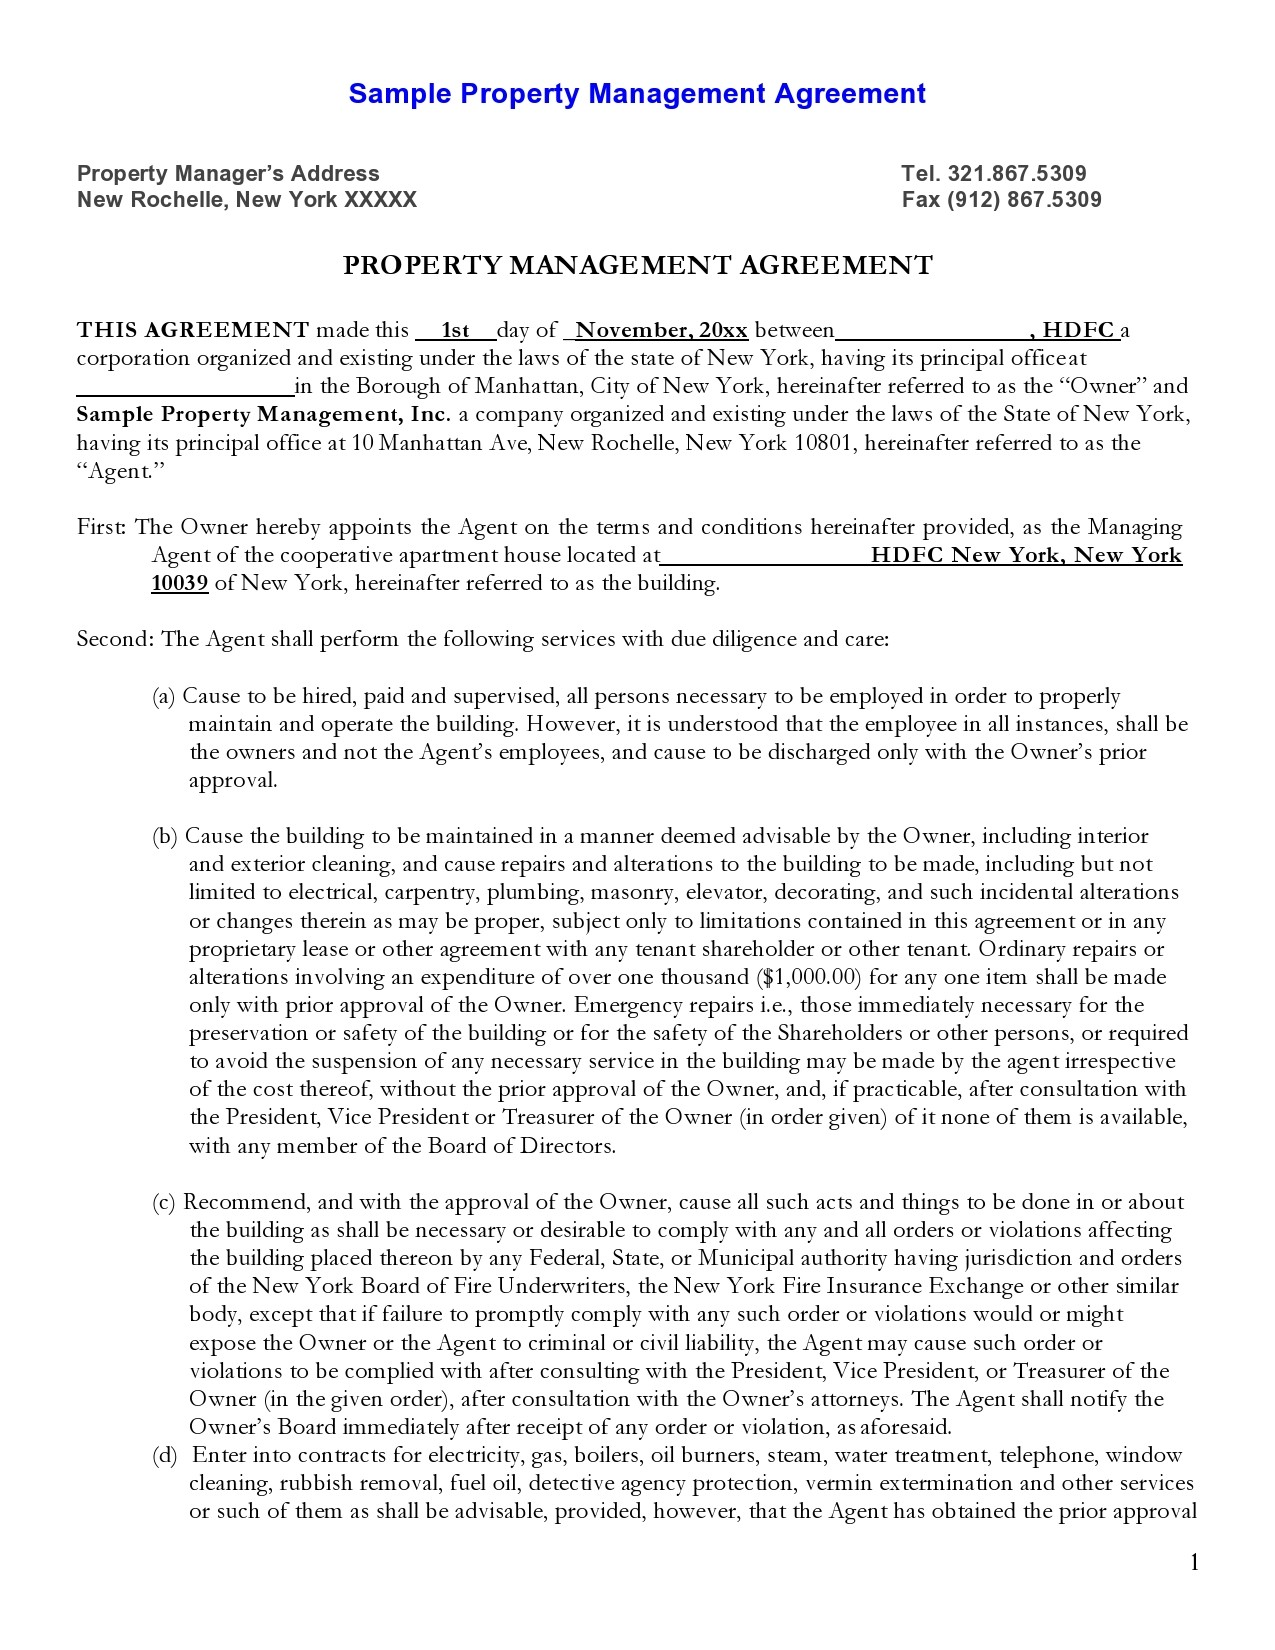 Free property management agreement 37